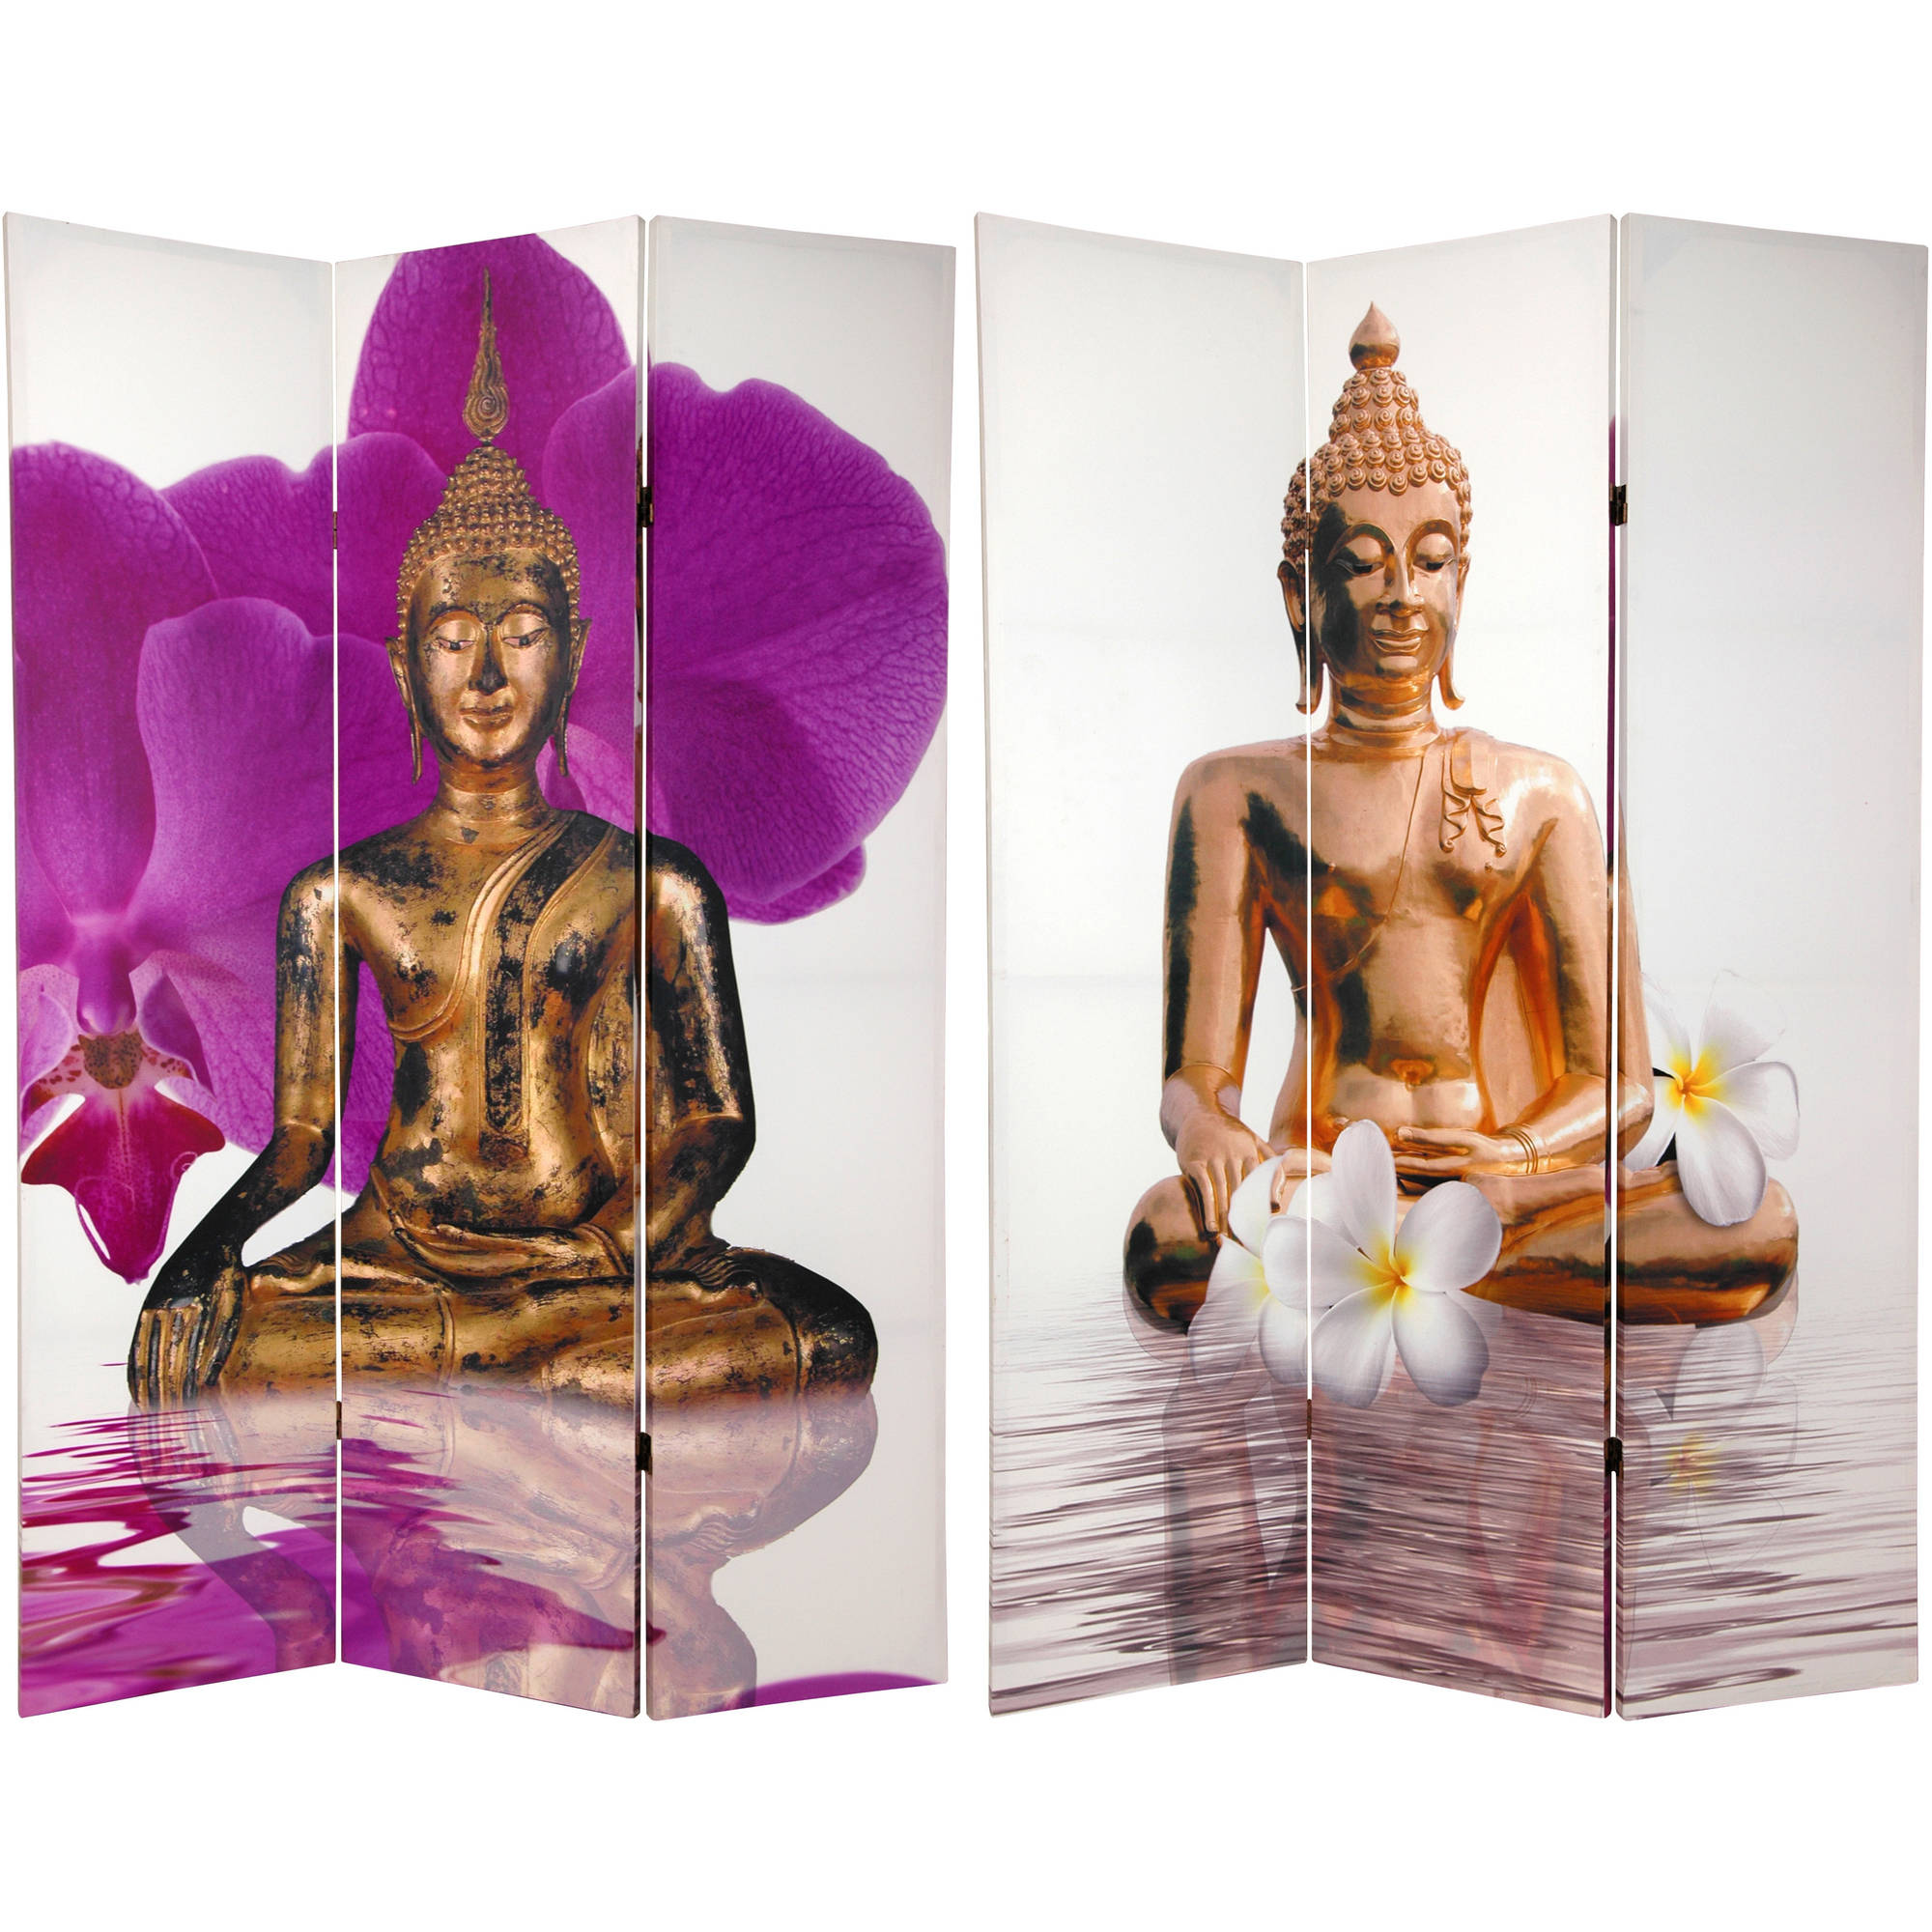 6 Tall Double Sided Thai Buddha Room Divider Walmartcom